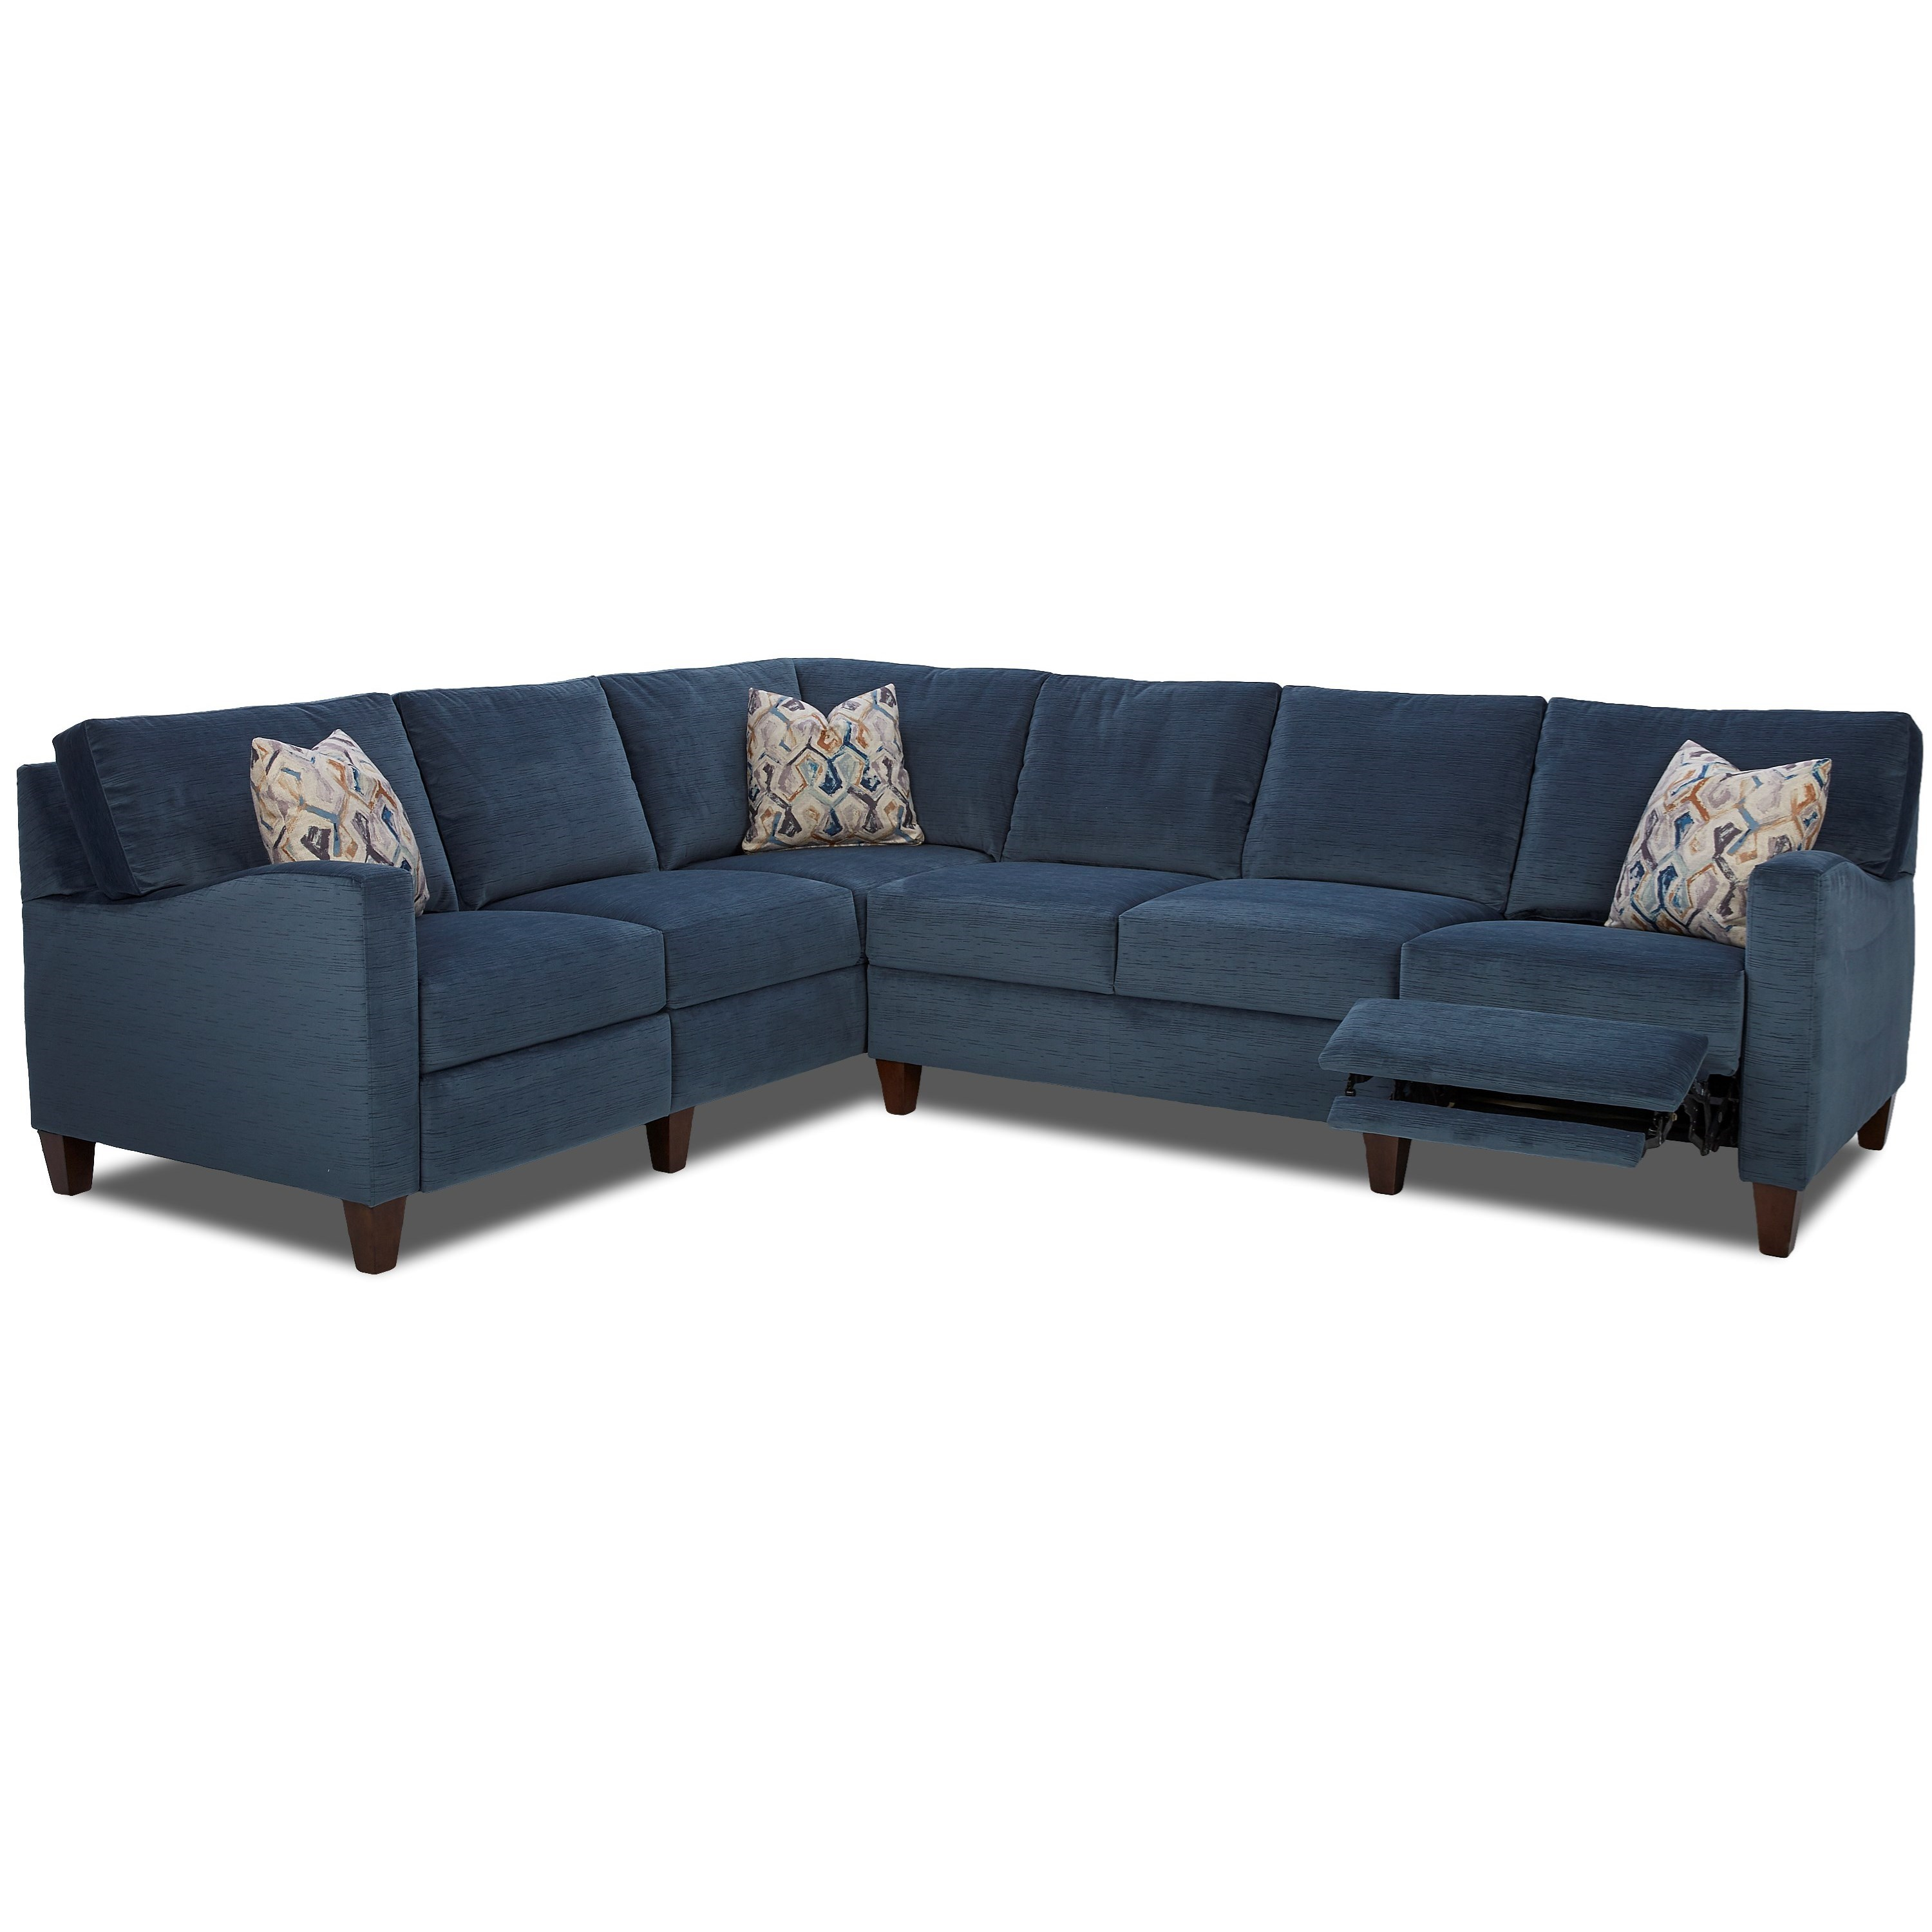 Hybrid Reclining Sectional w/ LAF Corn Sofa